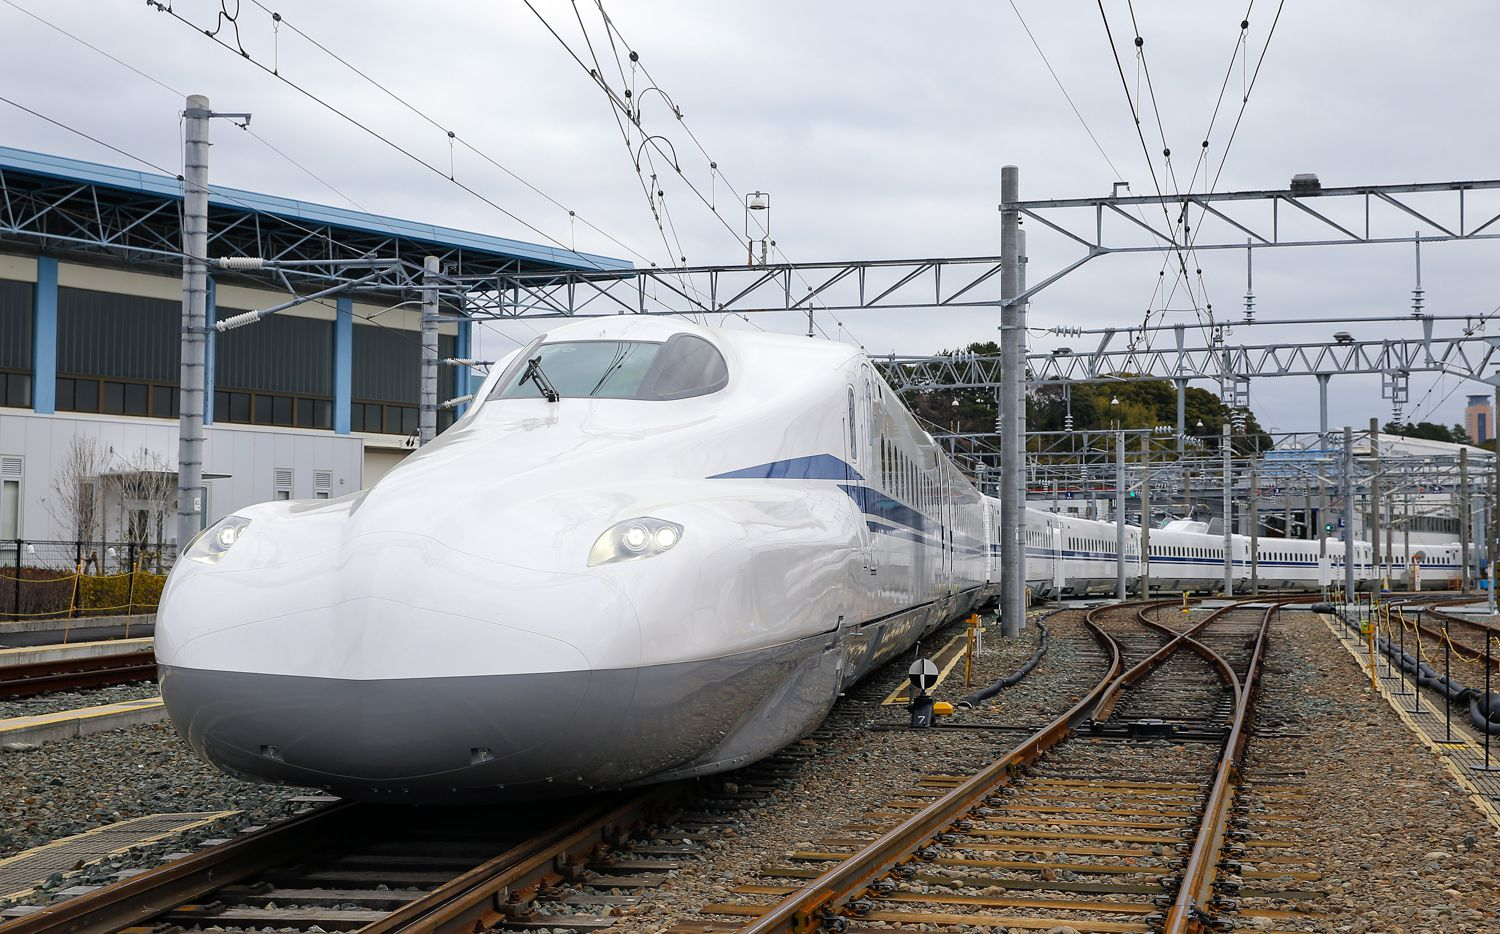 Texas Central Partners said the Shinkansen N700  Supreme is the new vehicle of choice for the high-speed rail line between Dallas and Houston.